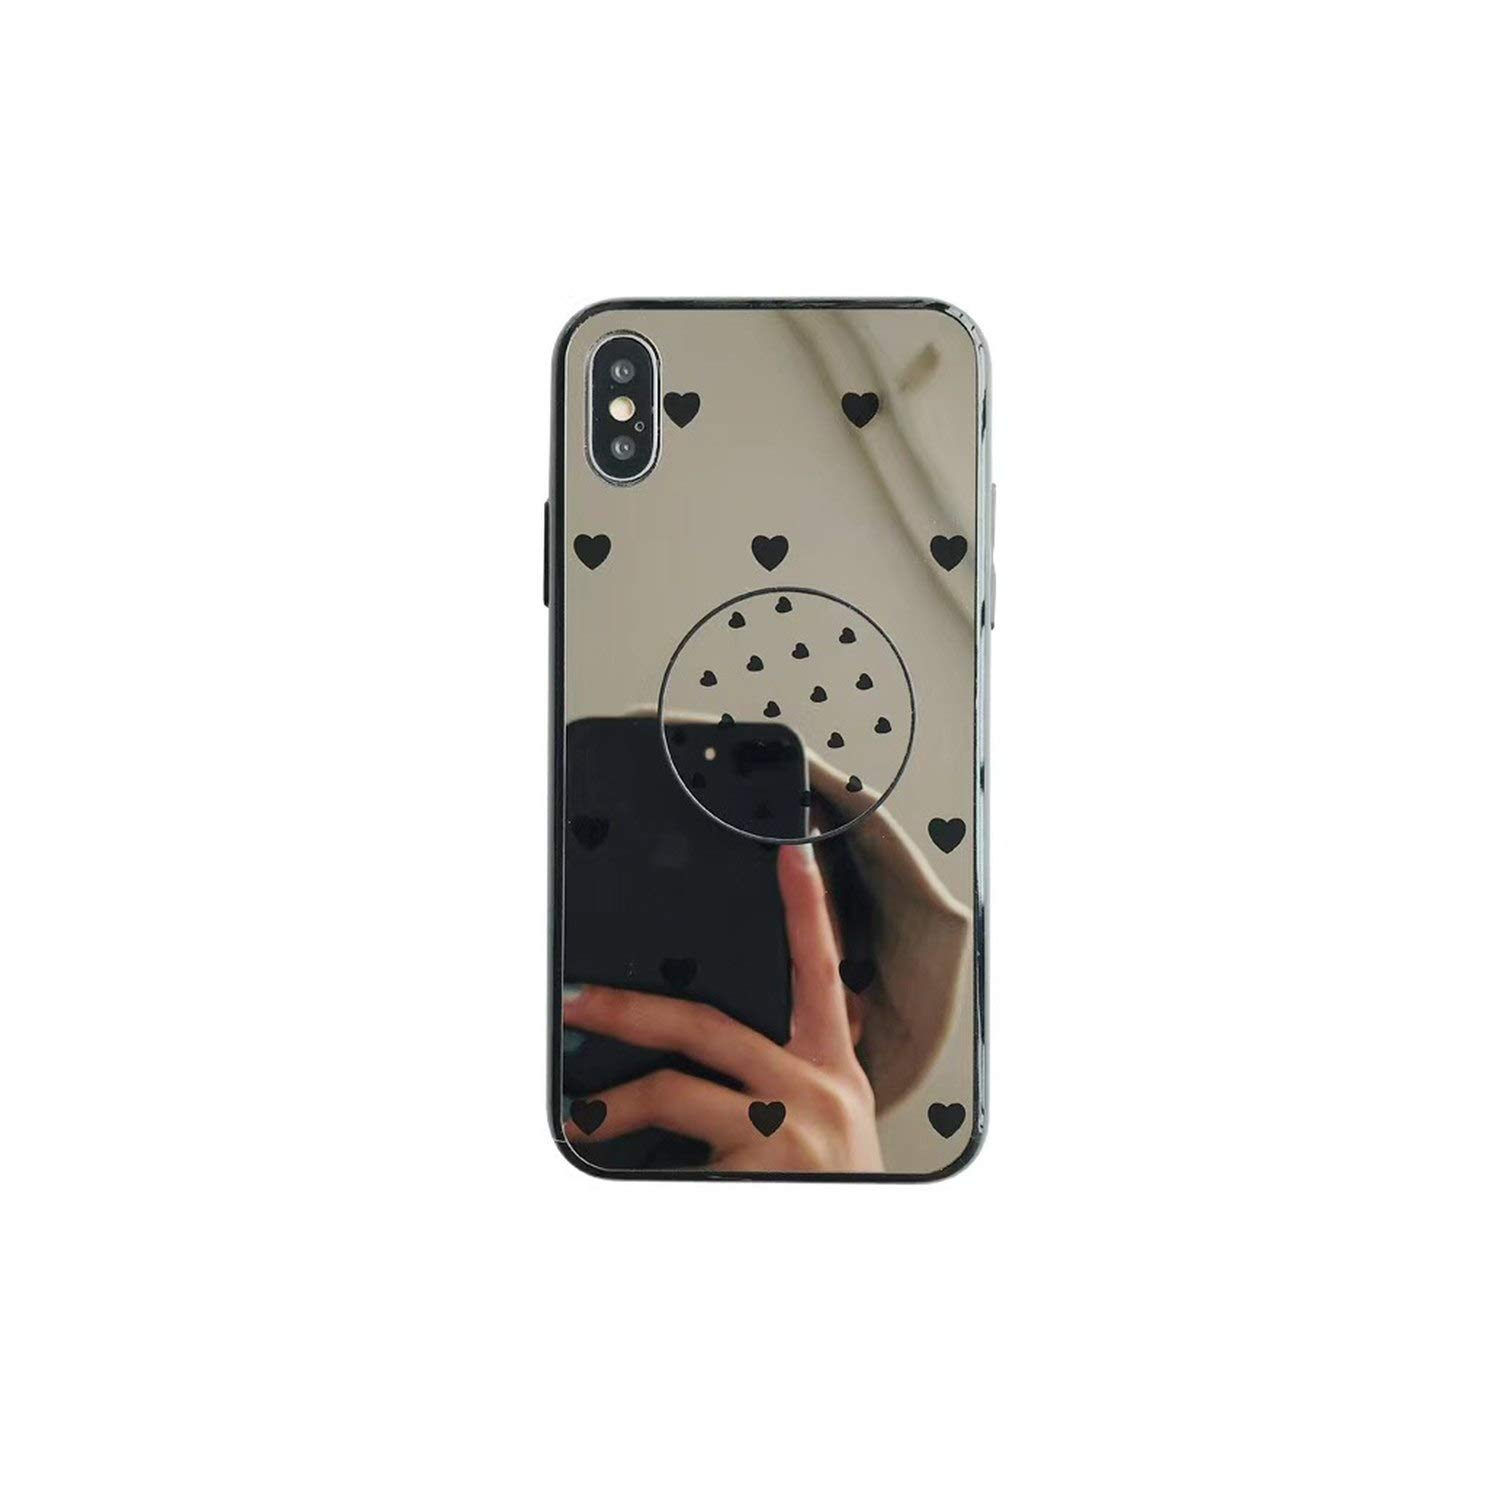 Amazon.com: Luxury Mirror Phone Case with Ring Phone Holder for iPhone Xs 8 8Plus 7 7Plus 6 6Plus XR Heart Geometric Plain Back Phone Cover,C,for iPhone ...